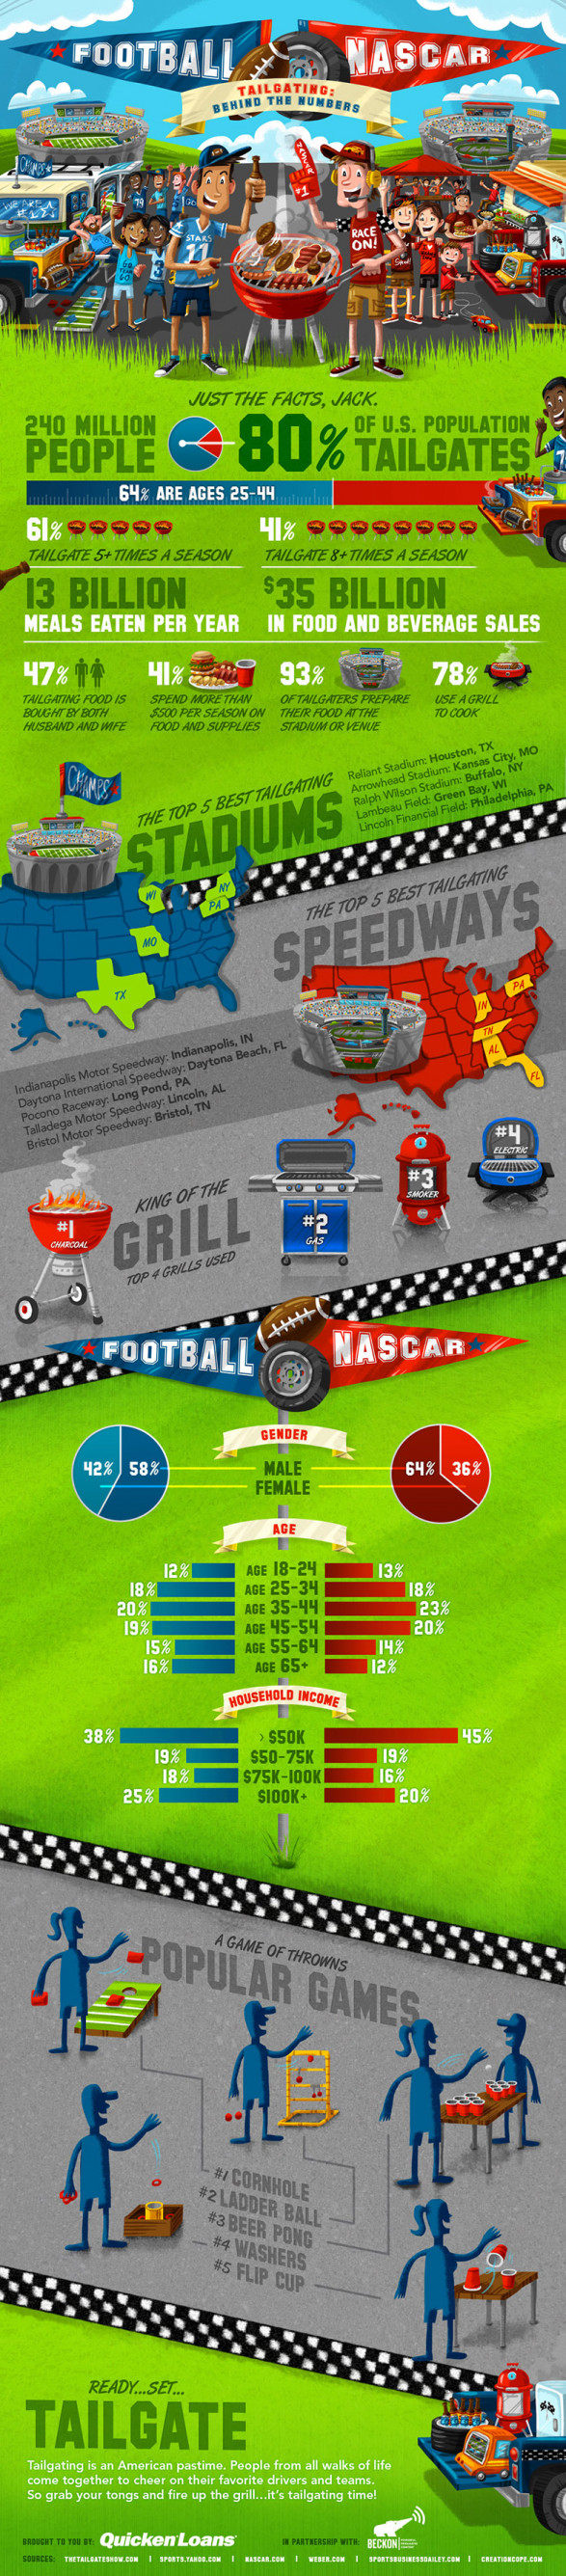 Tailgating: Behind The Numbers